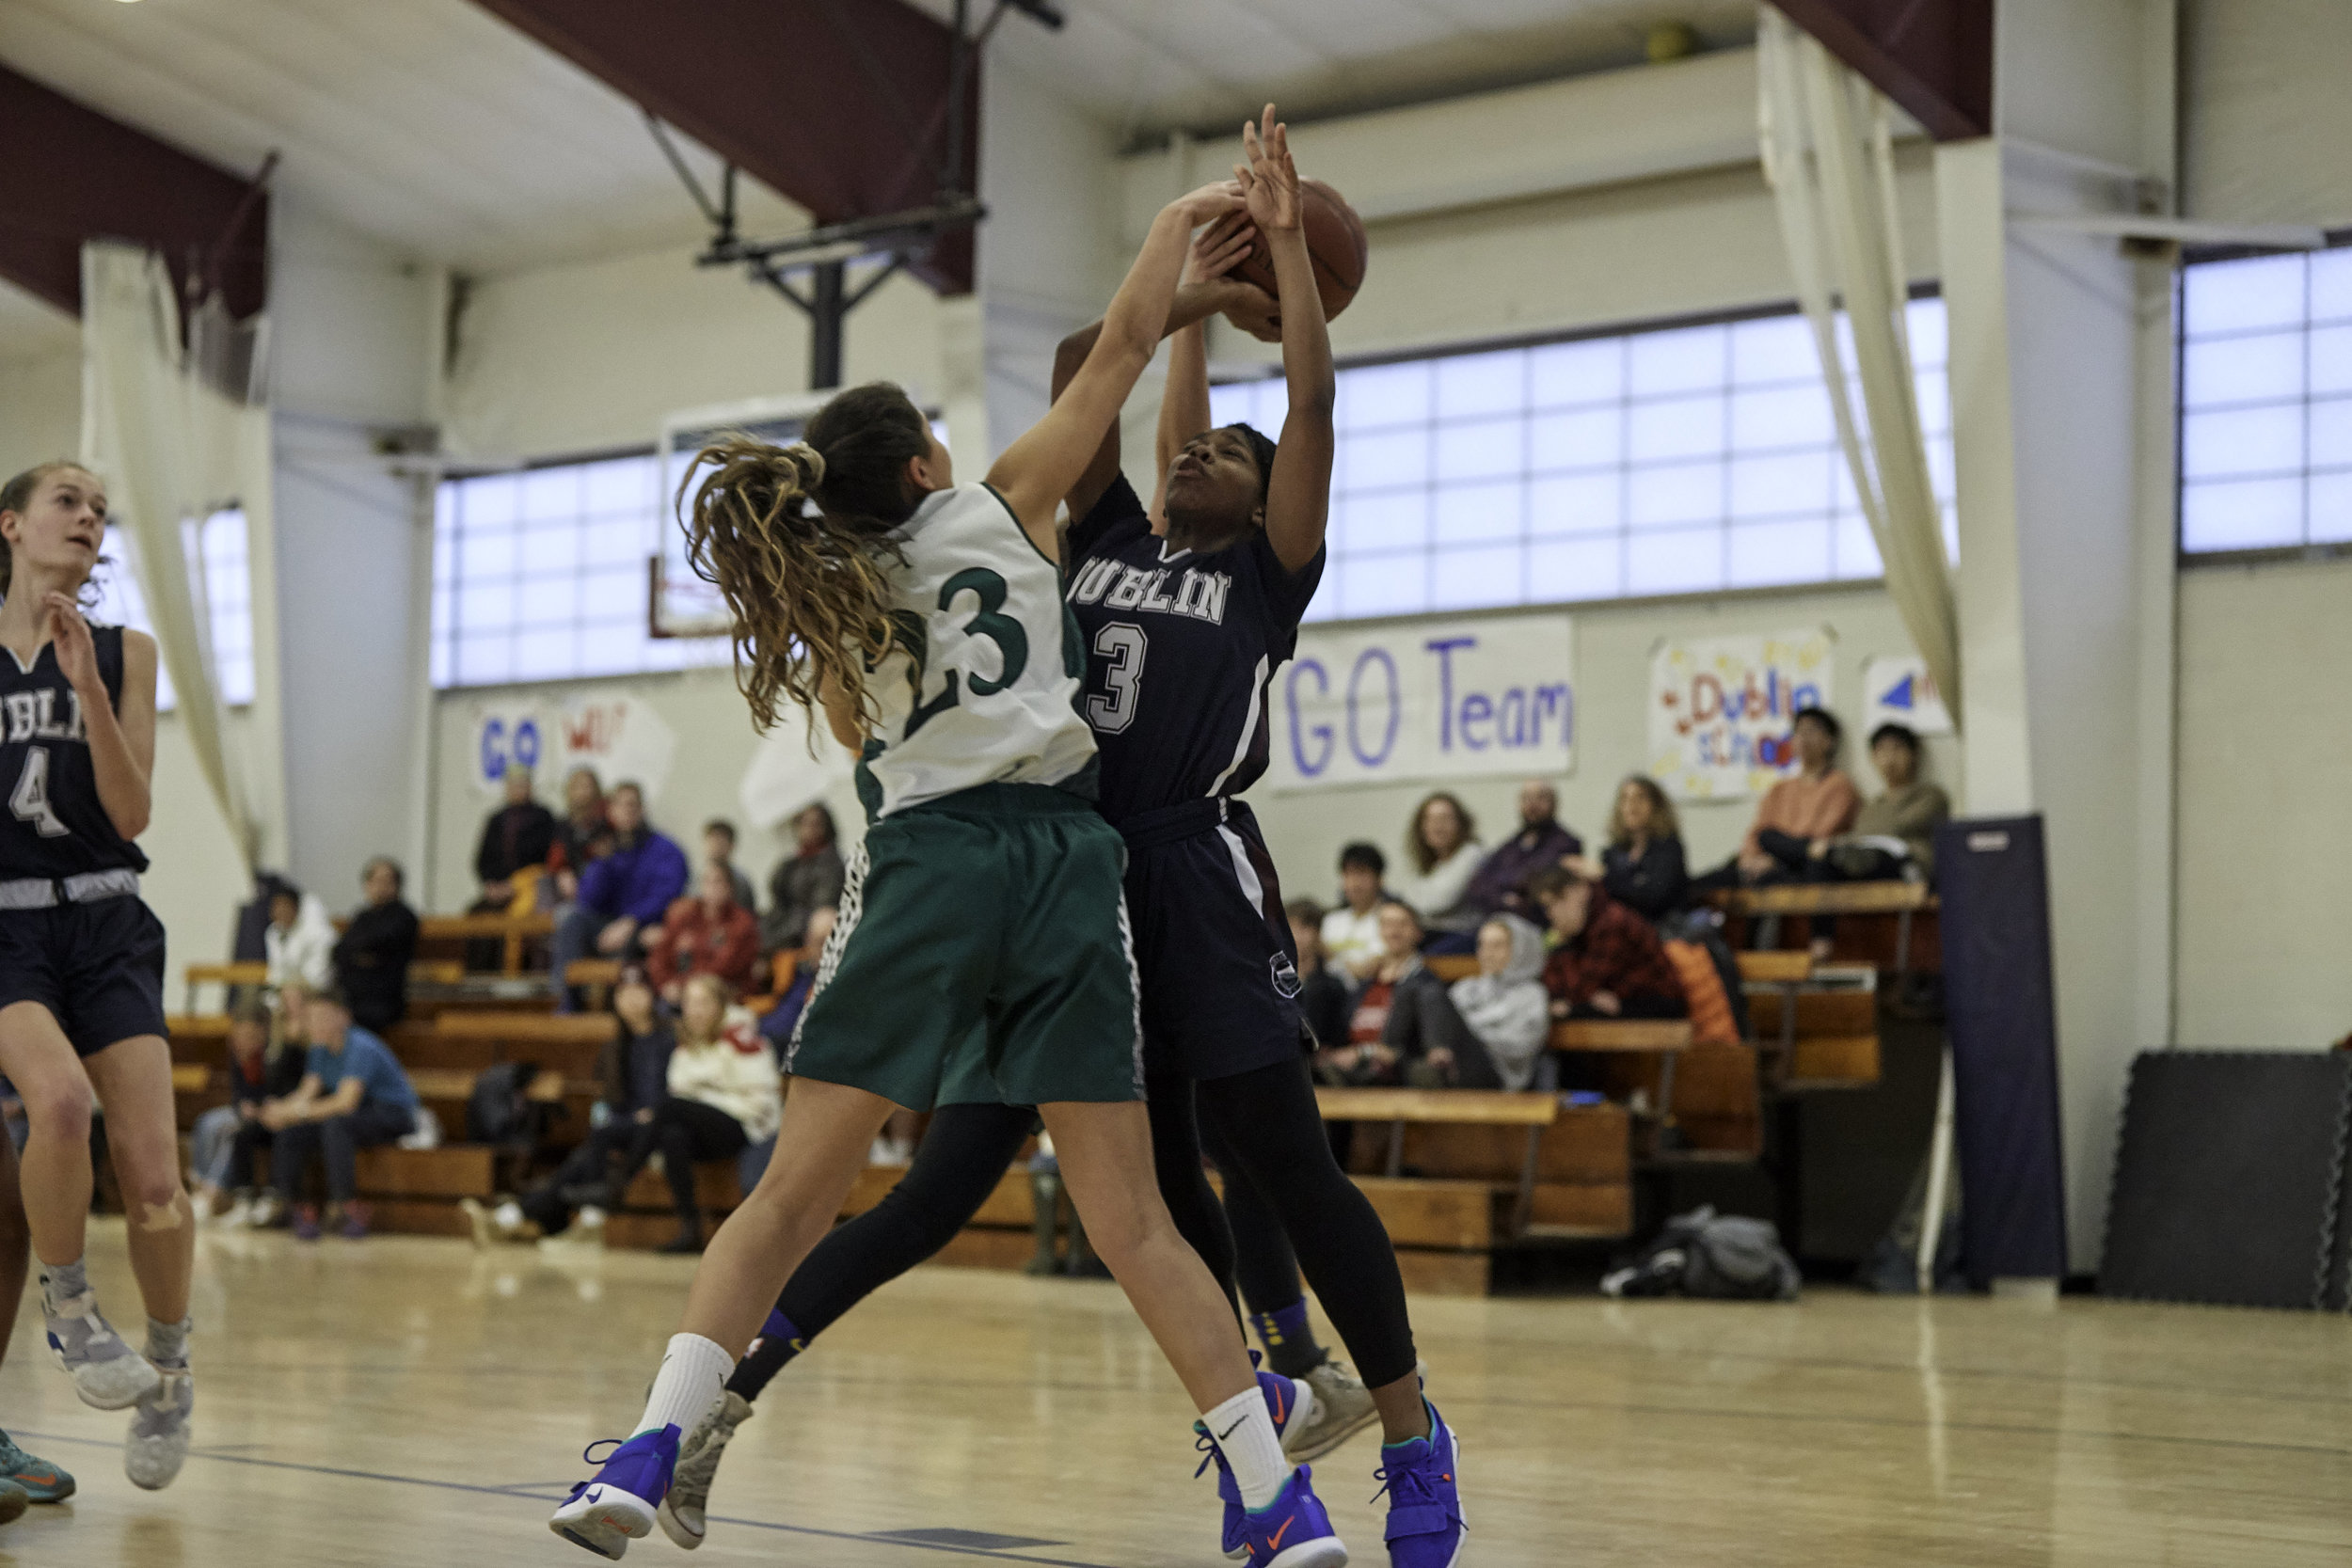 Basketball vs Putney School, February 9, 2019 - 167205.jpg